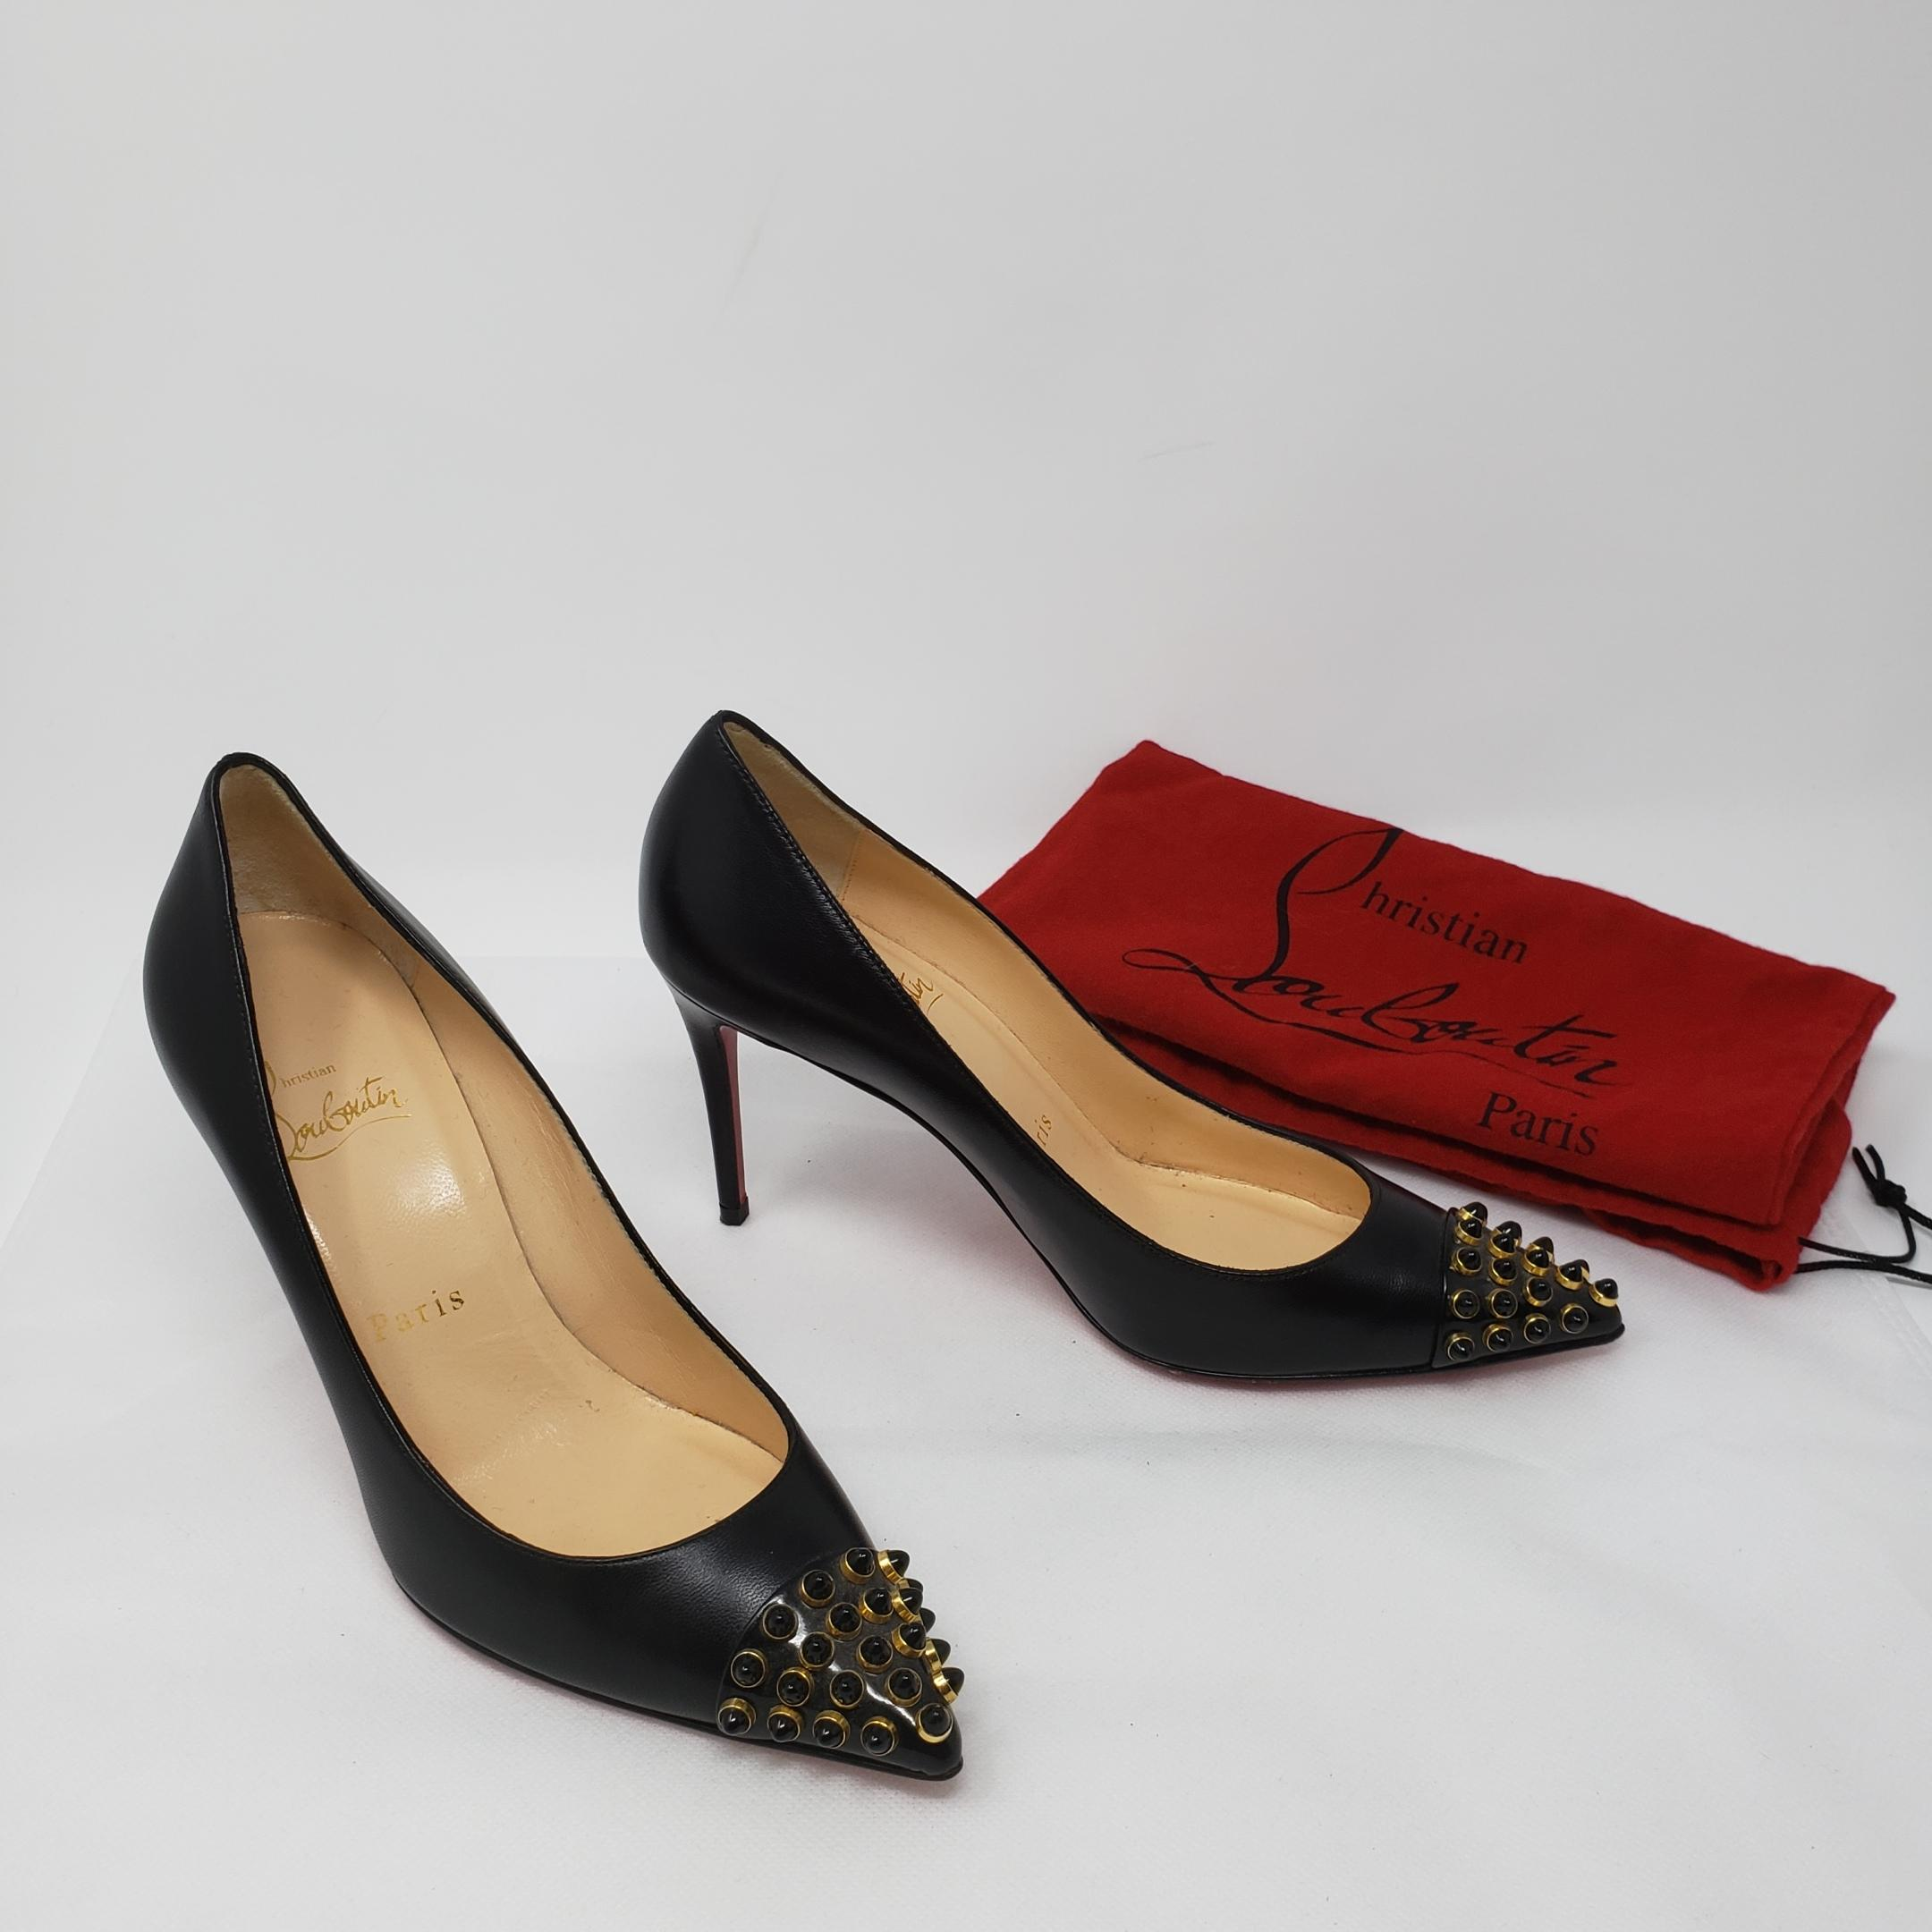 7c3dc8bf31d4 ... Christian Louboutin Black Gold Leather Pointed-toe Pumps Size EU EU EU  35 (Approx ...